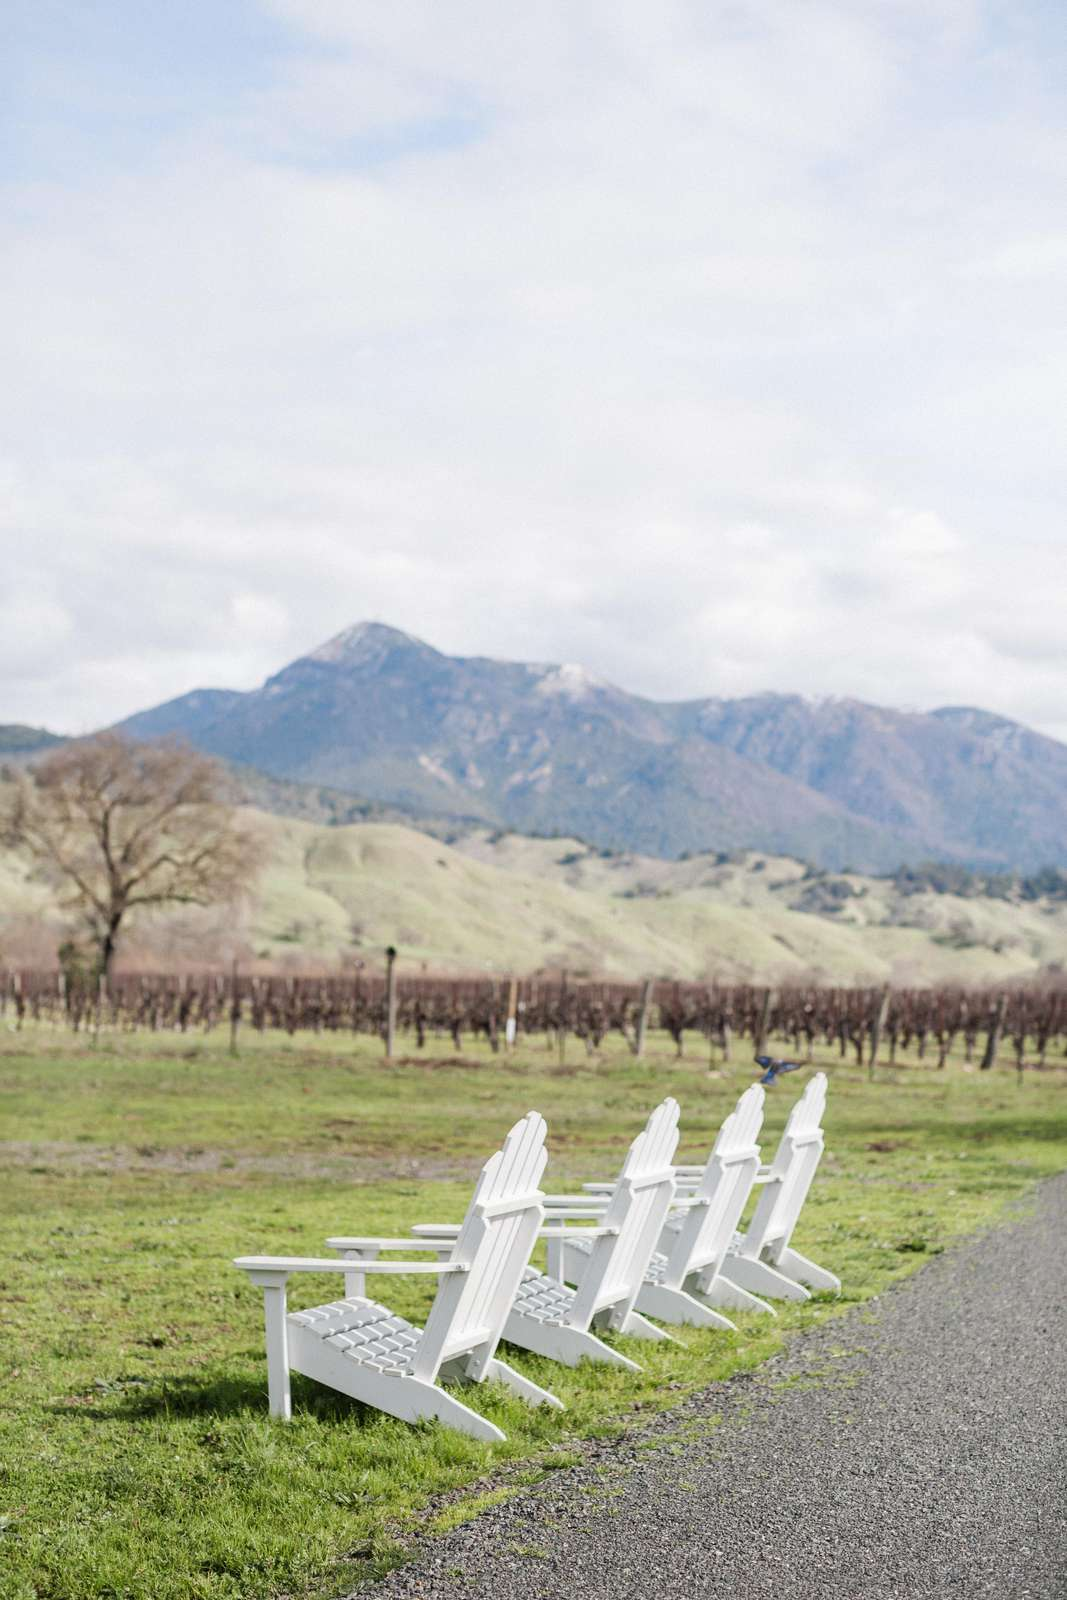 Adirondacks in the front with a vineyard and Mt. St. Helena view